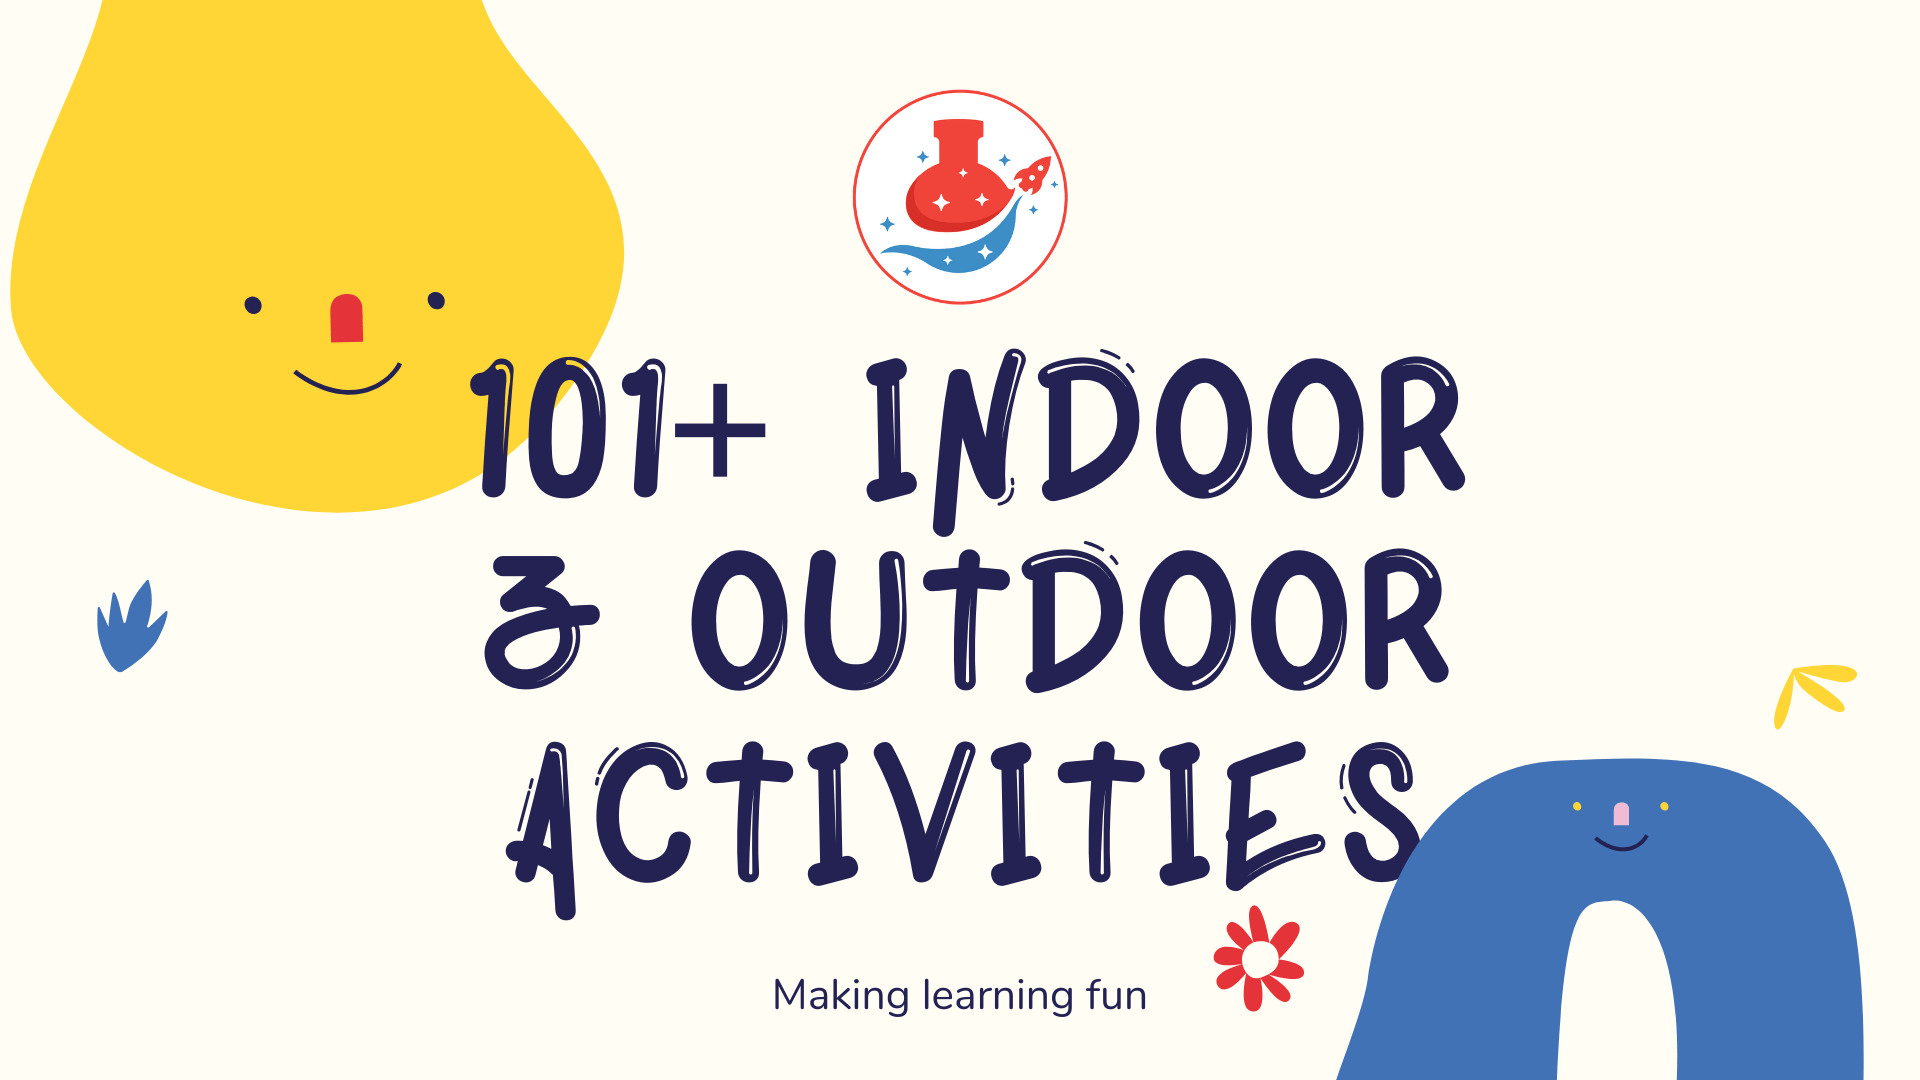 101+ Indoor & Outdoor Activities For Kids